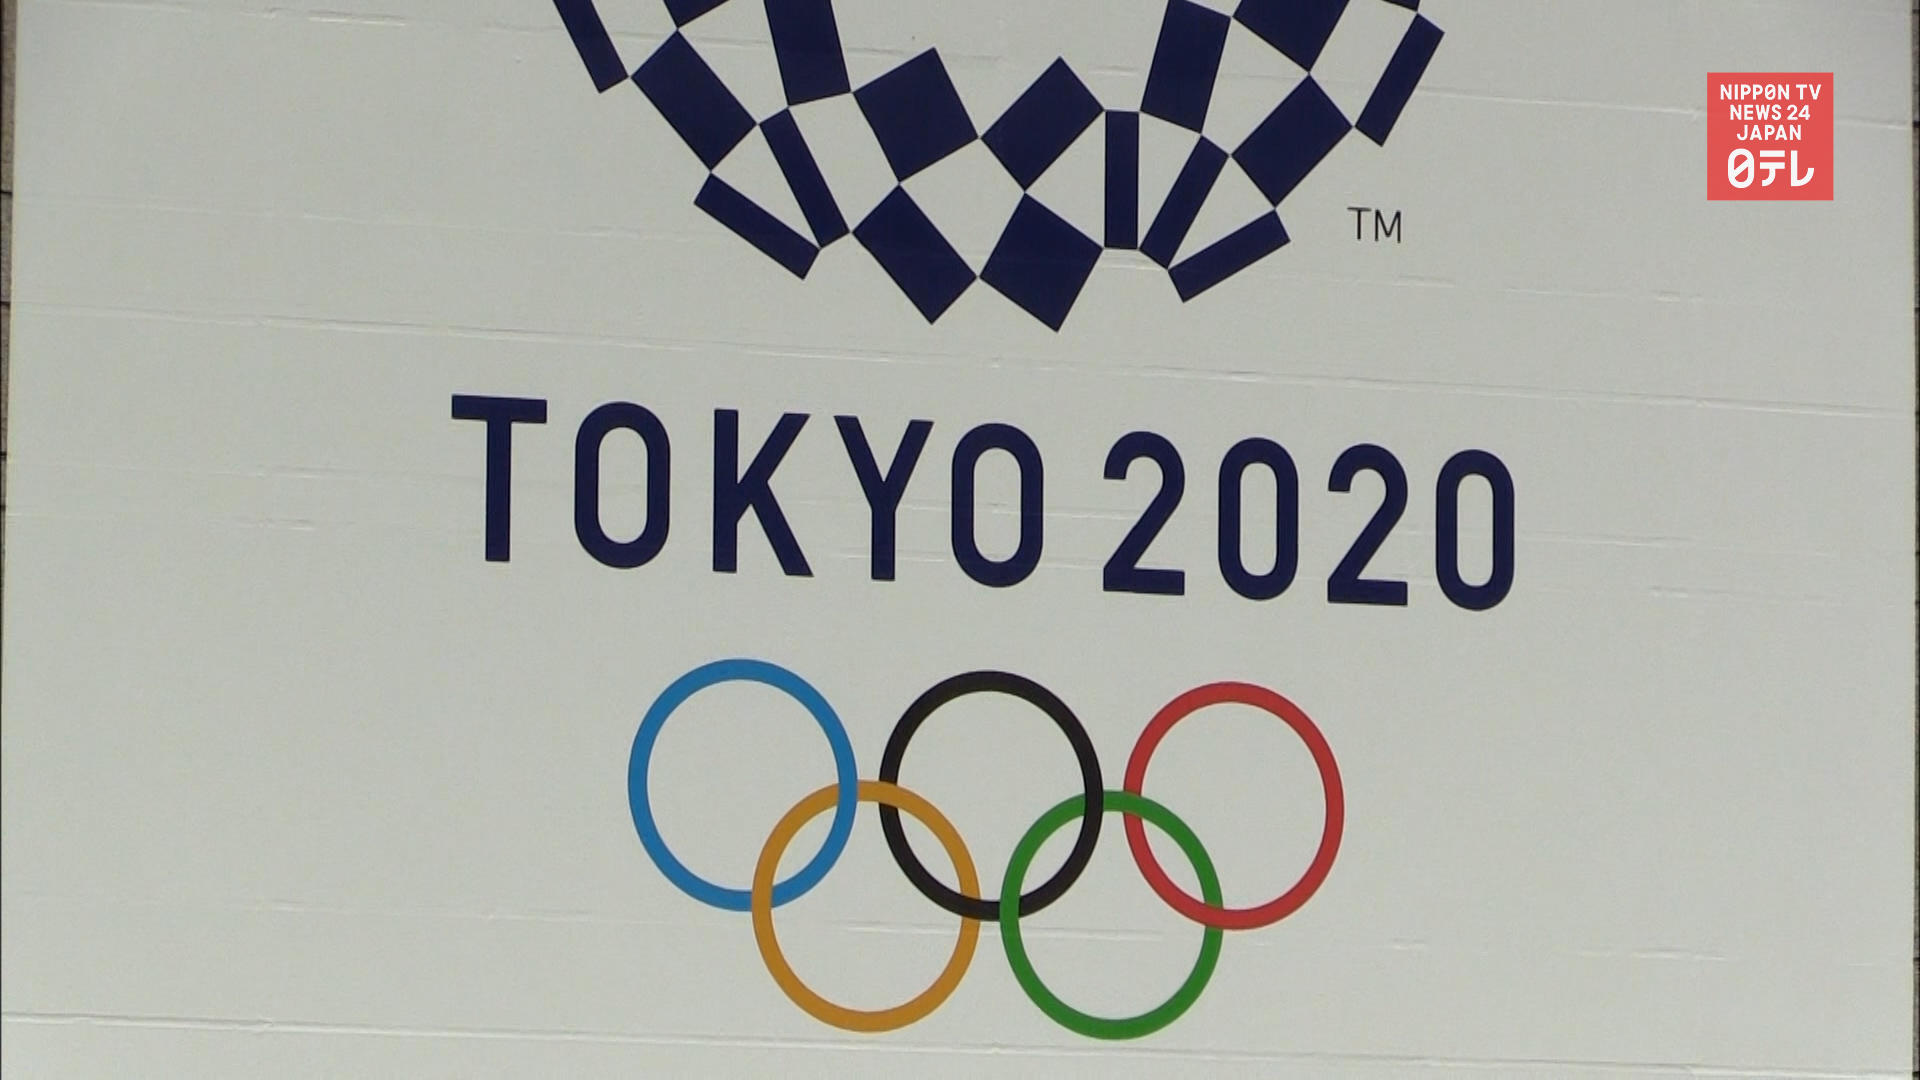 All venues secured for postponed Tokyo Olympics